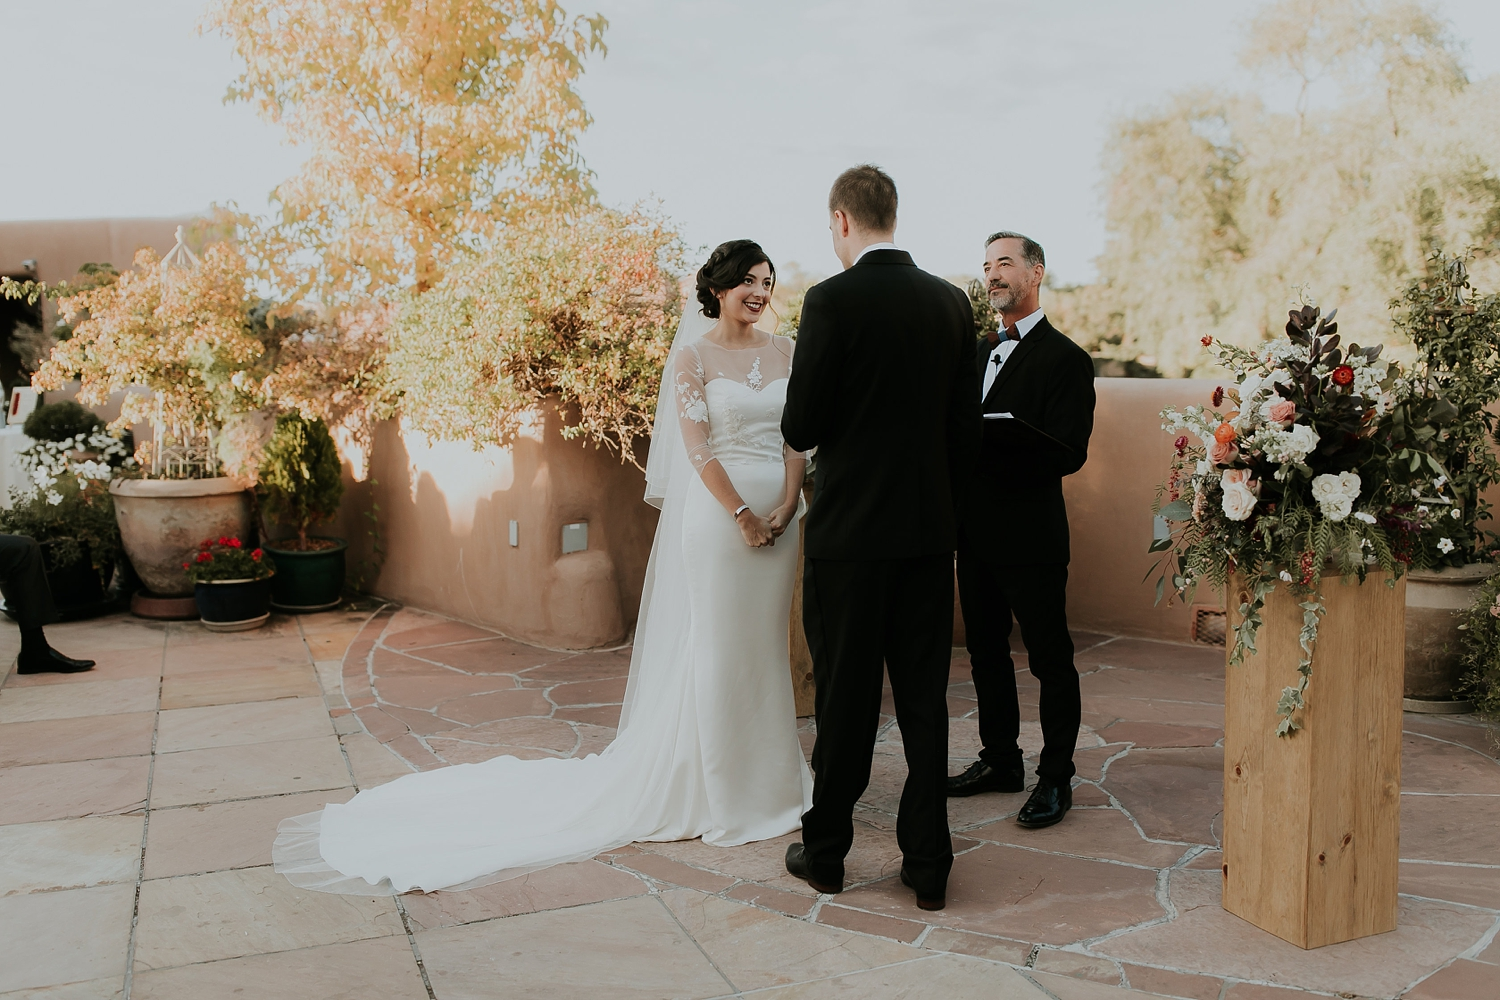 Alicia+lucia+photography+-+albuquerque+wedding+photographer+-+santa+fe+wedding+photography+-+new+mexico+wedding+photographer+-+la+fonda+santa+fe+wedding+-+santa+fe+fall+wedding+-+la+fonda+fall+wedding_0071.jpg